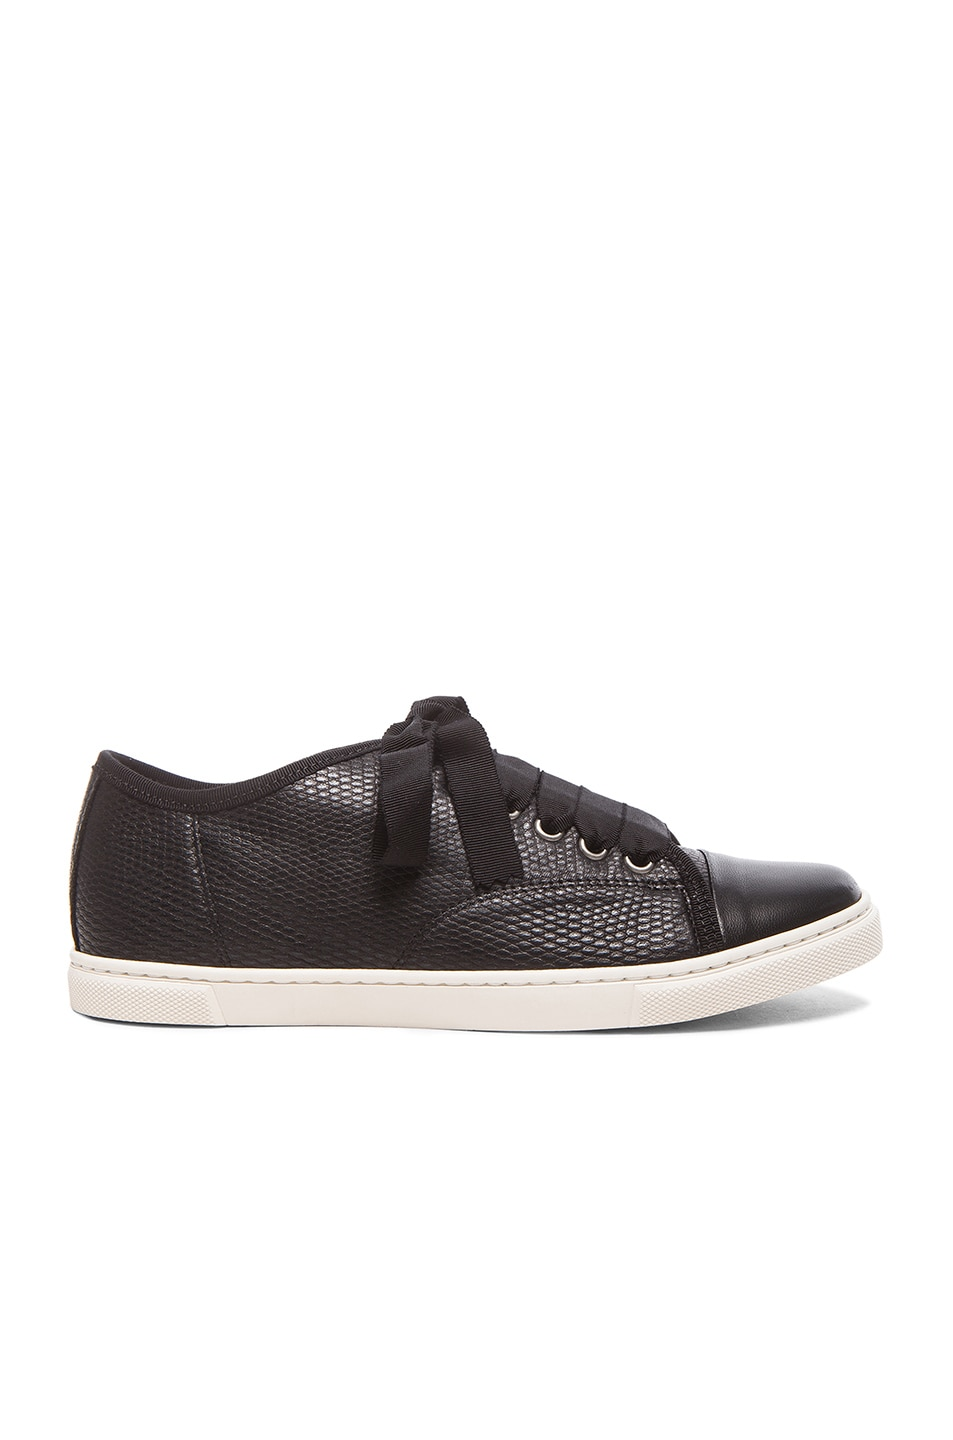 Image 1 of Lanvin Low Top Lambskin Sneakers in Black